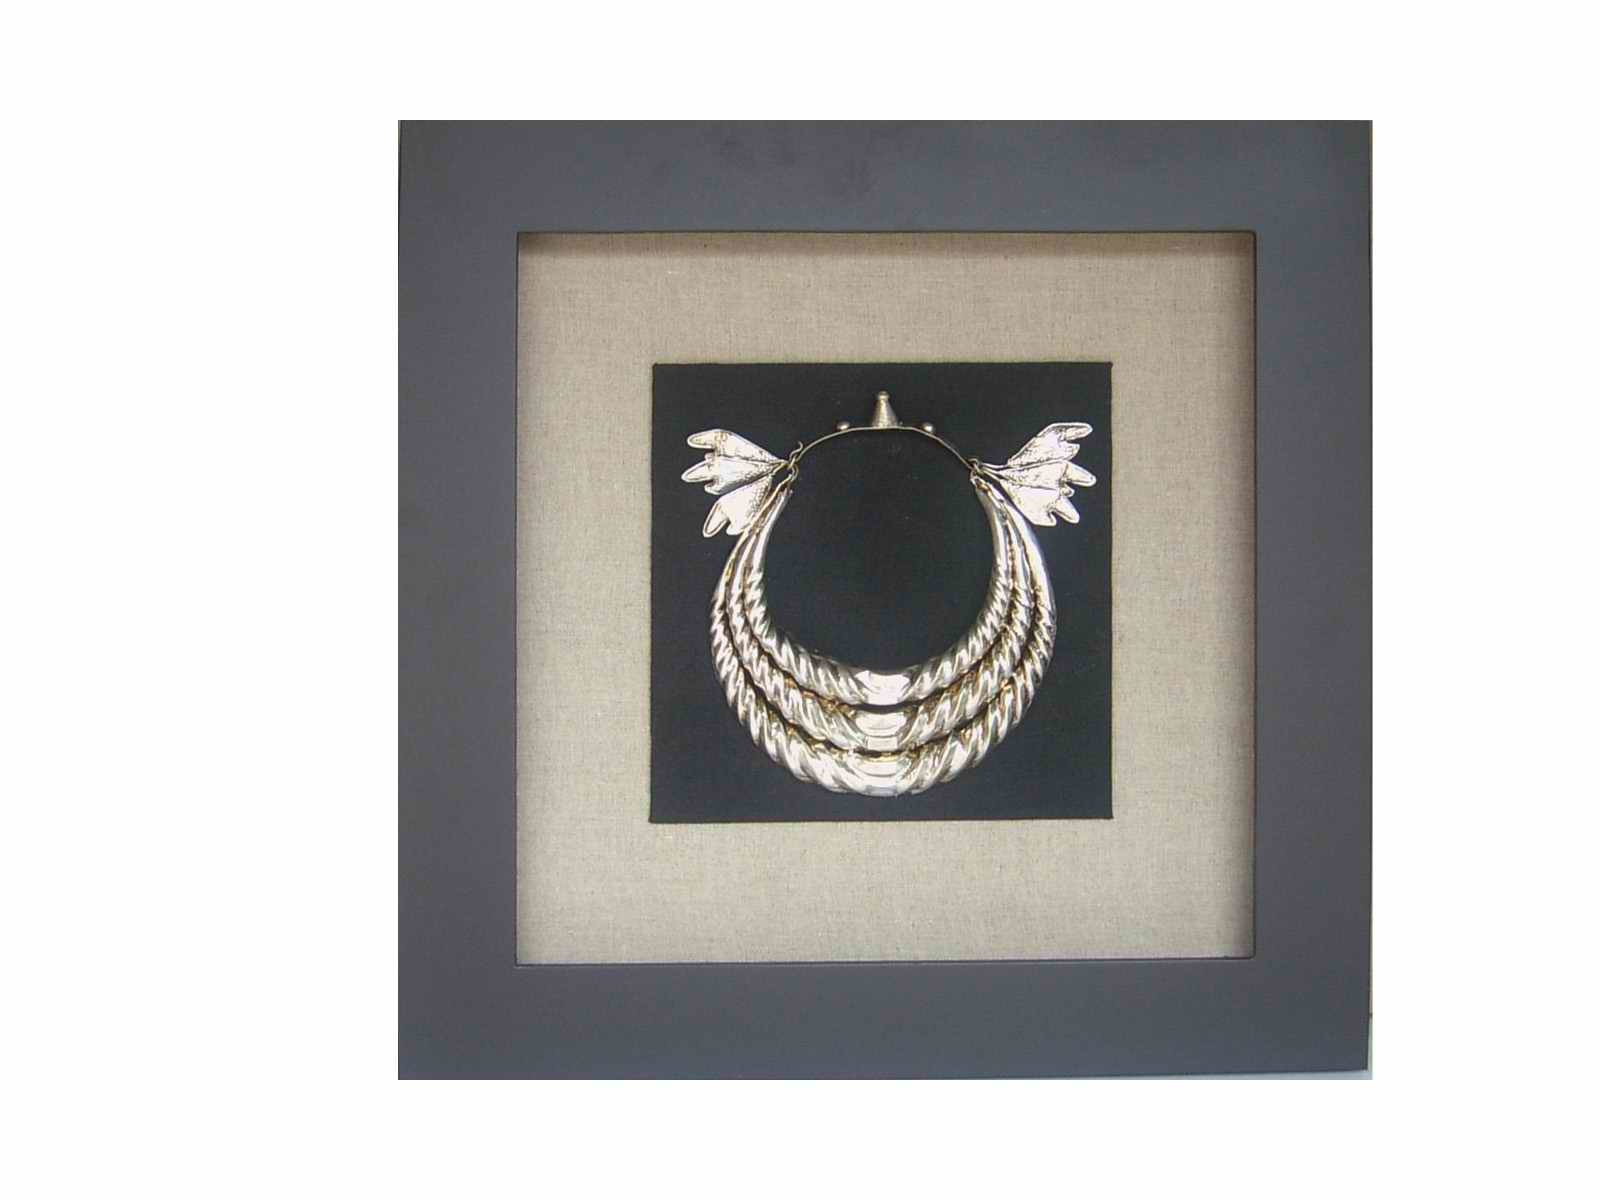 Wall Art Shadow Box : China shadow box wall decor b picture frame